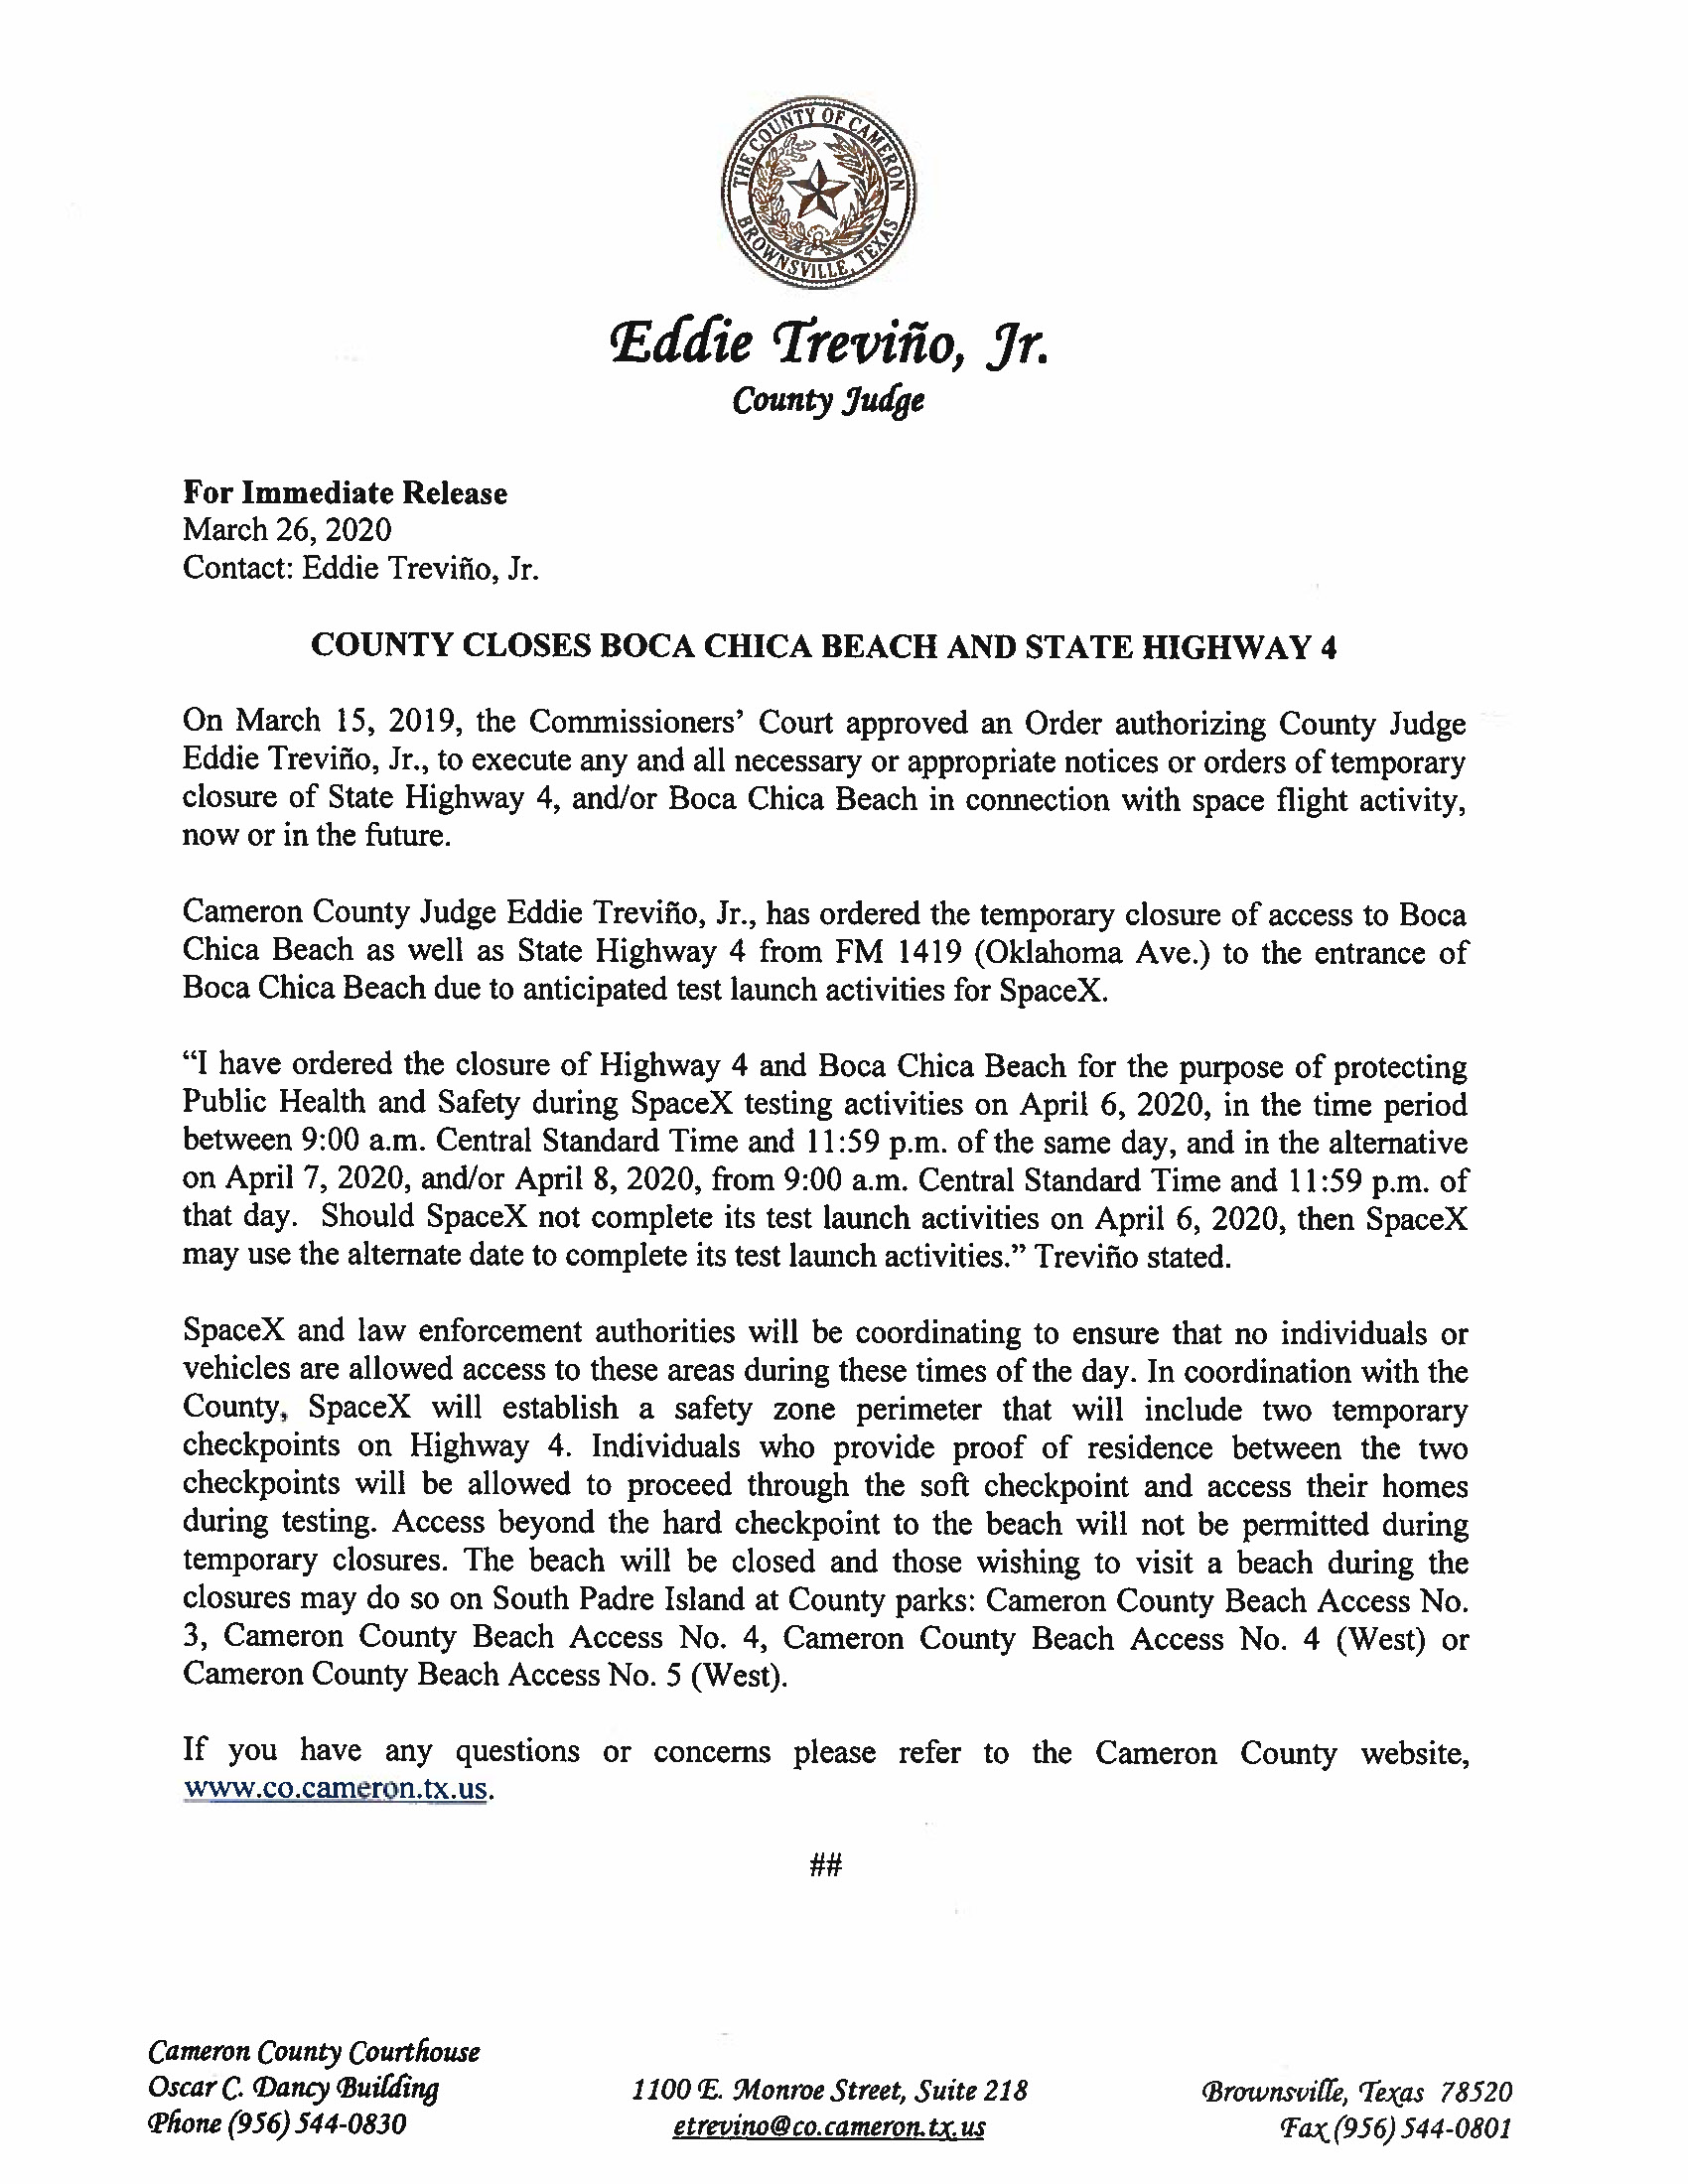 Press Release English Spanish For 04.06.2020 For Boca Chica Beach And Road Closure Page 1